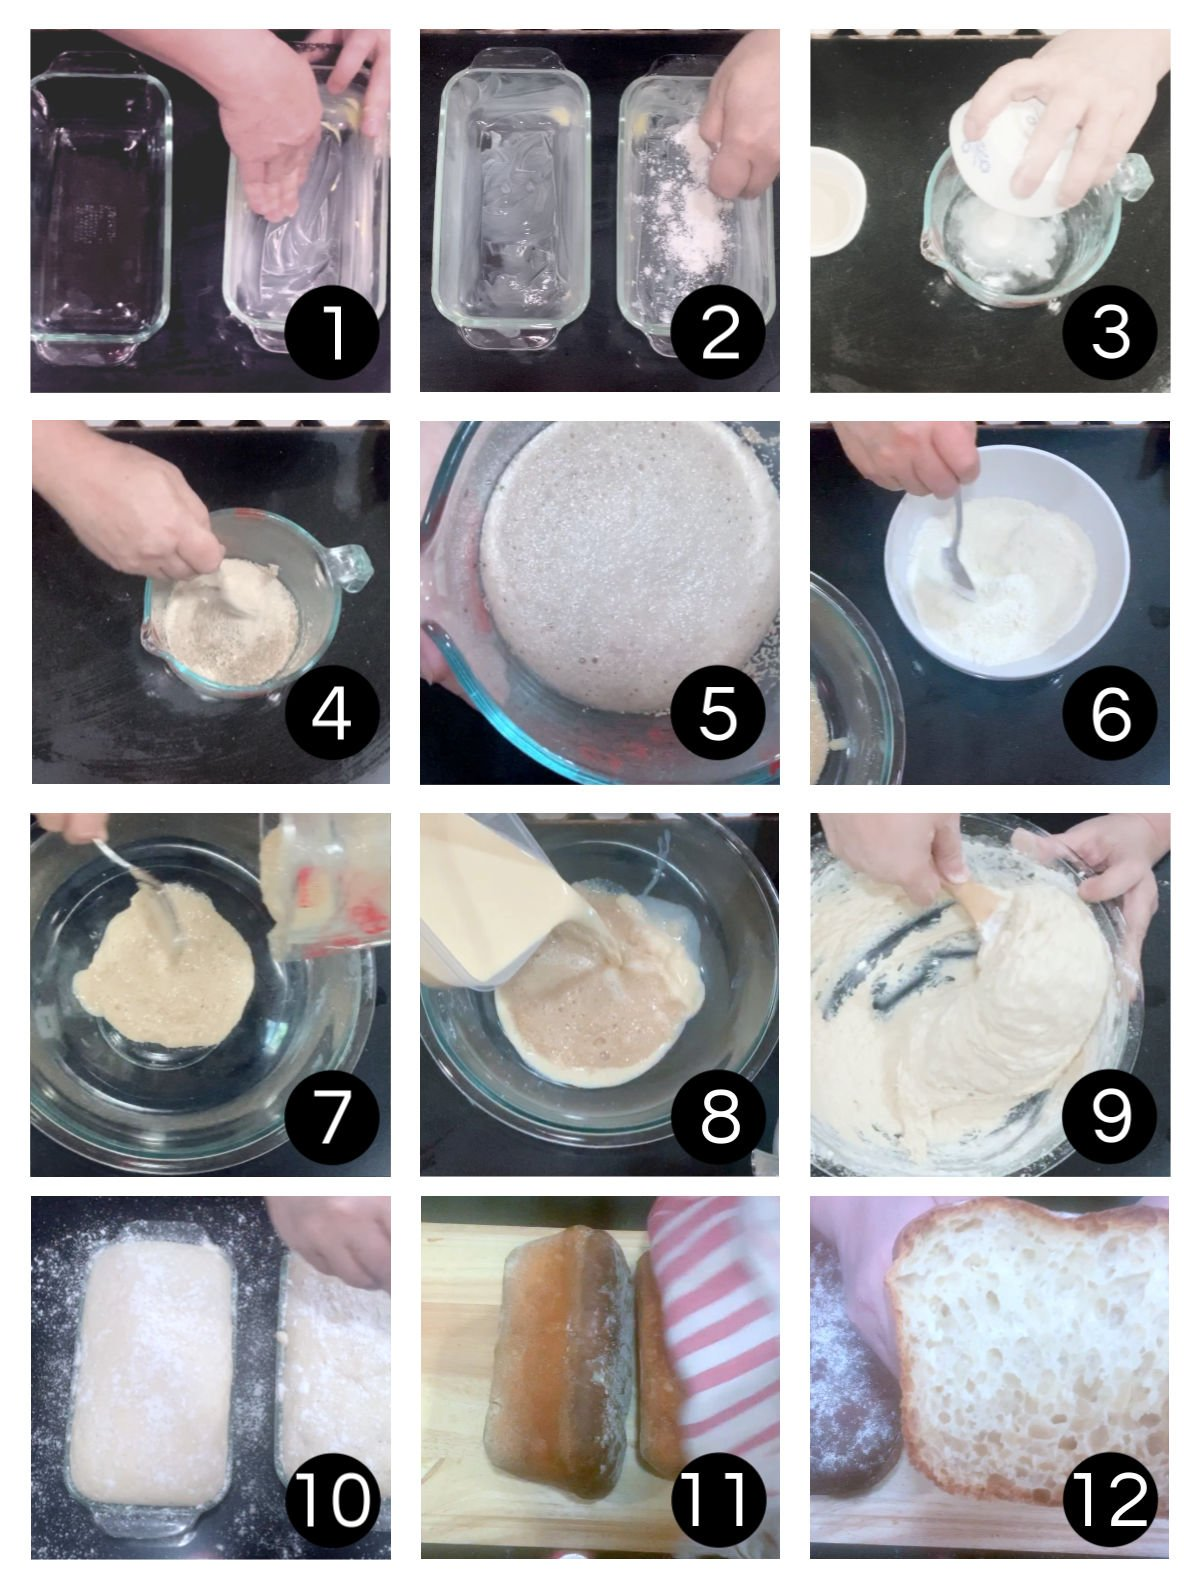 Step by step images for making the bread.